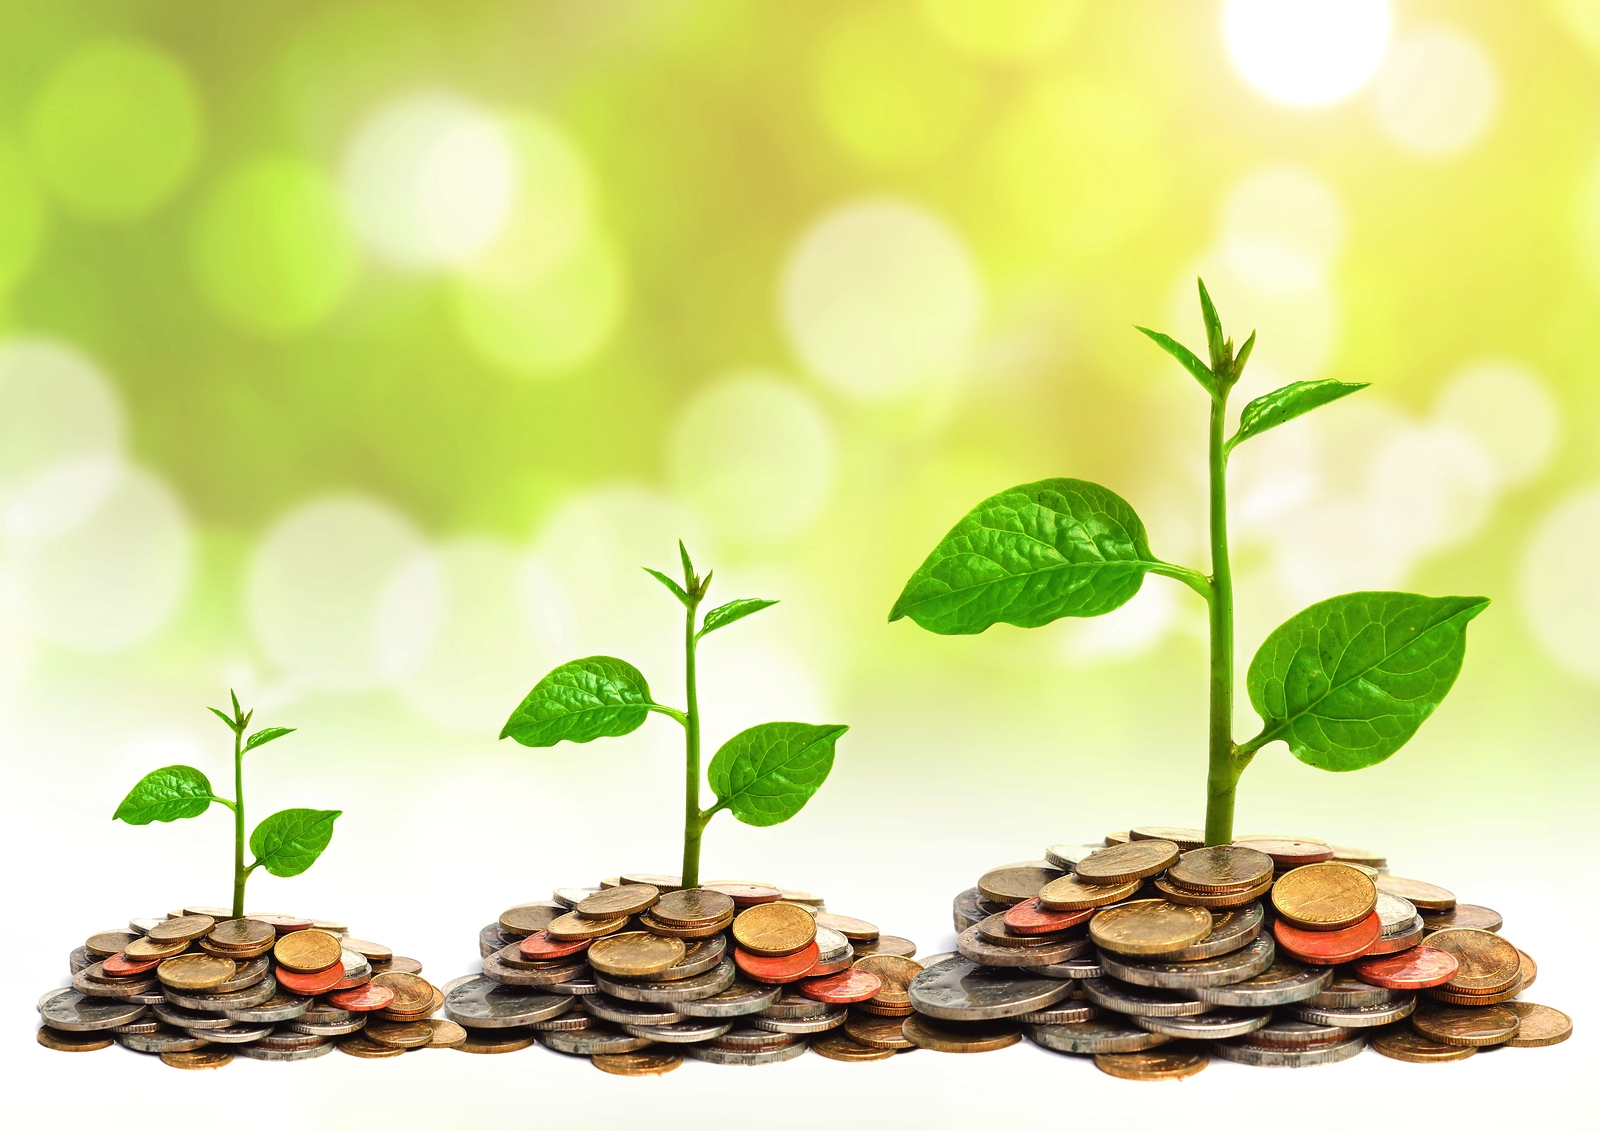 Divine Vastu Tips Plants And Trees To Keep In Your House For Wealth Prosperity